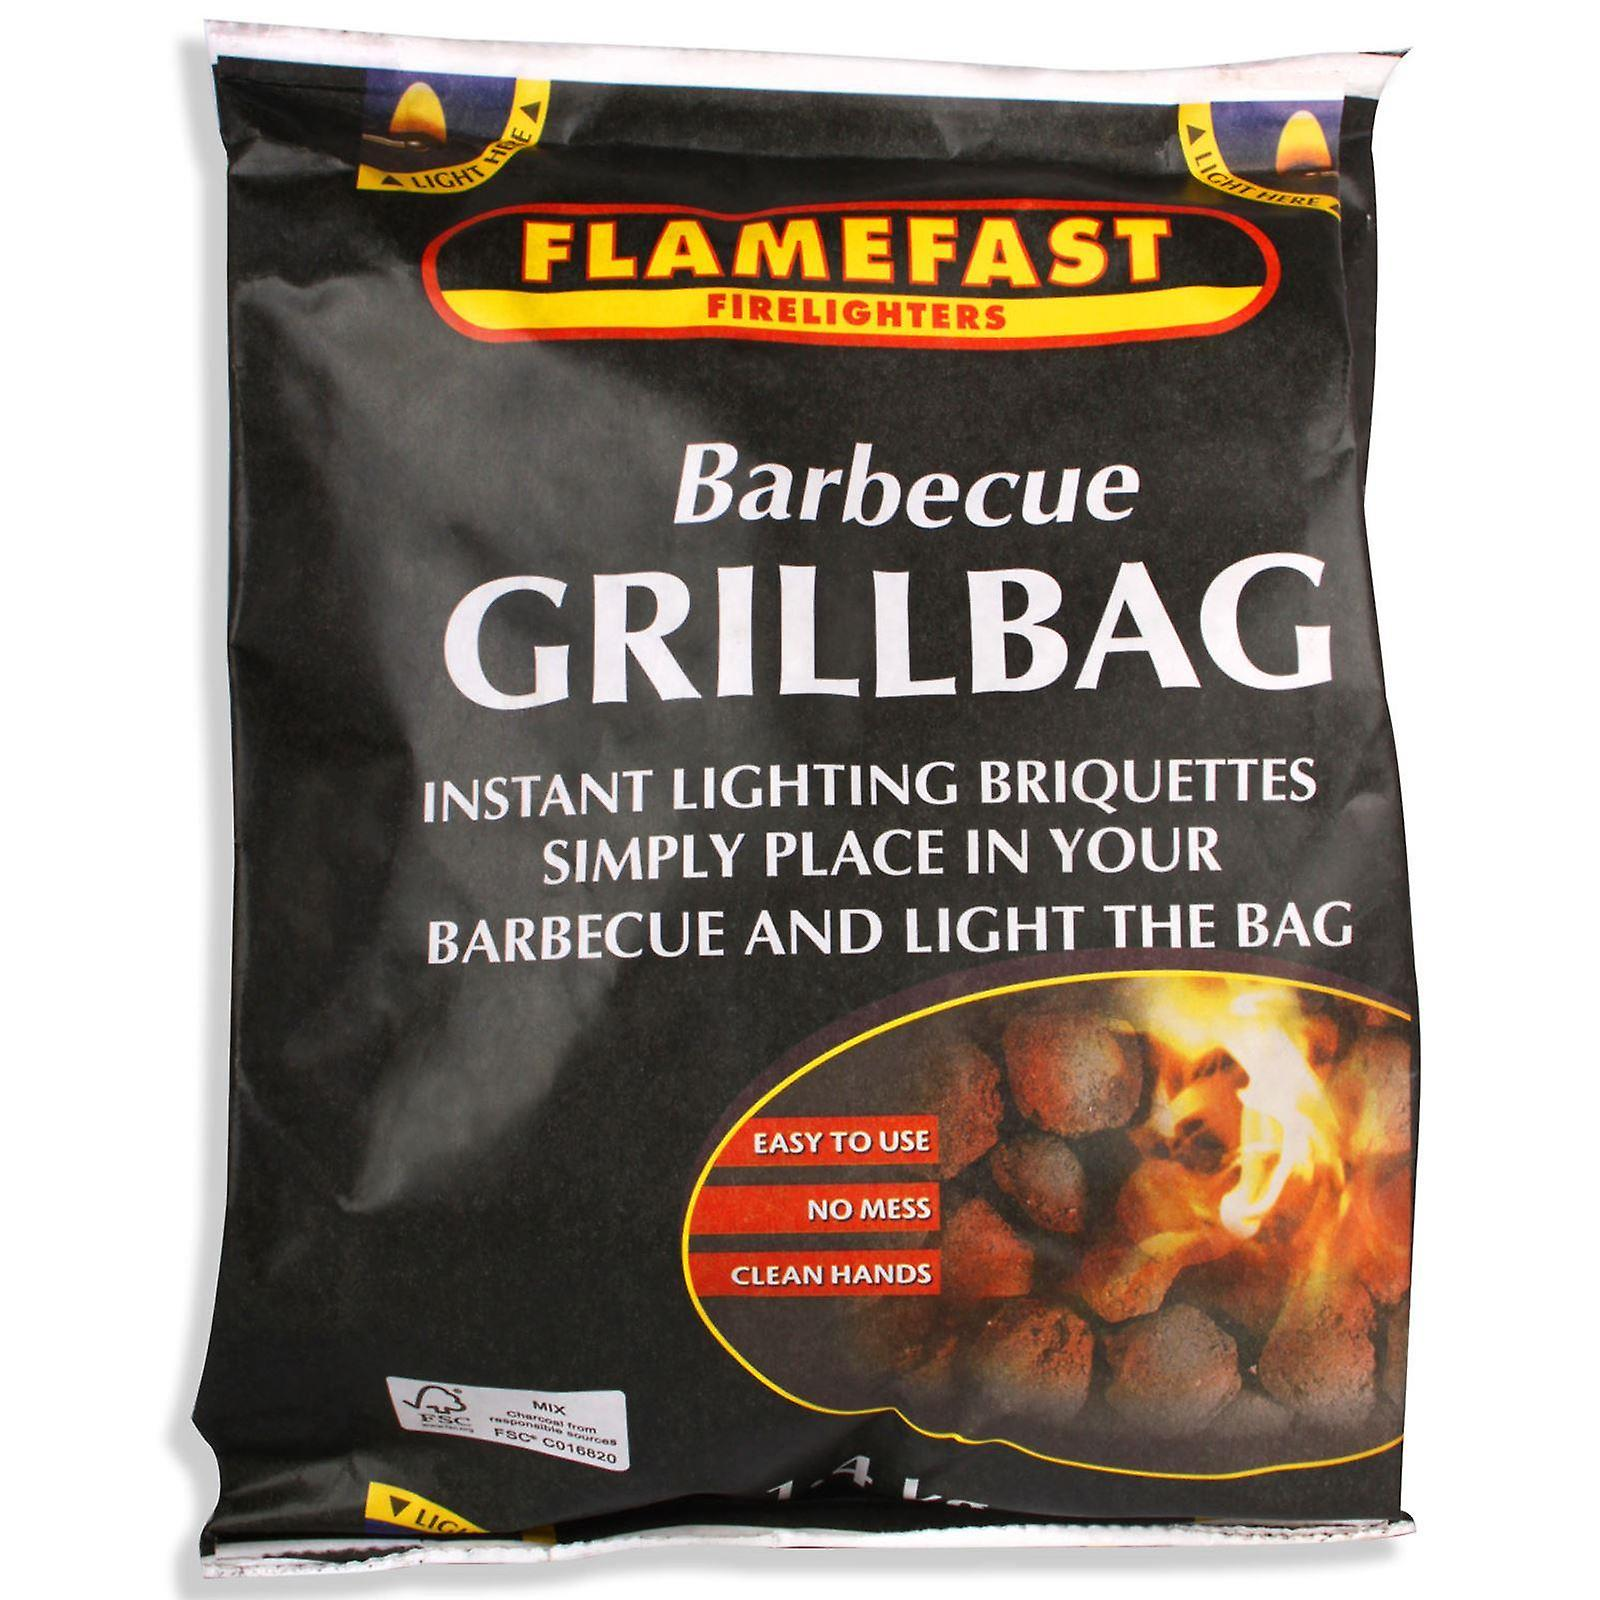 Flamefast Barbecue Grill Bag 1.4kg